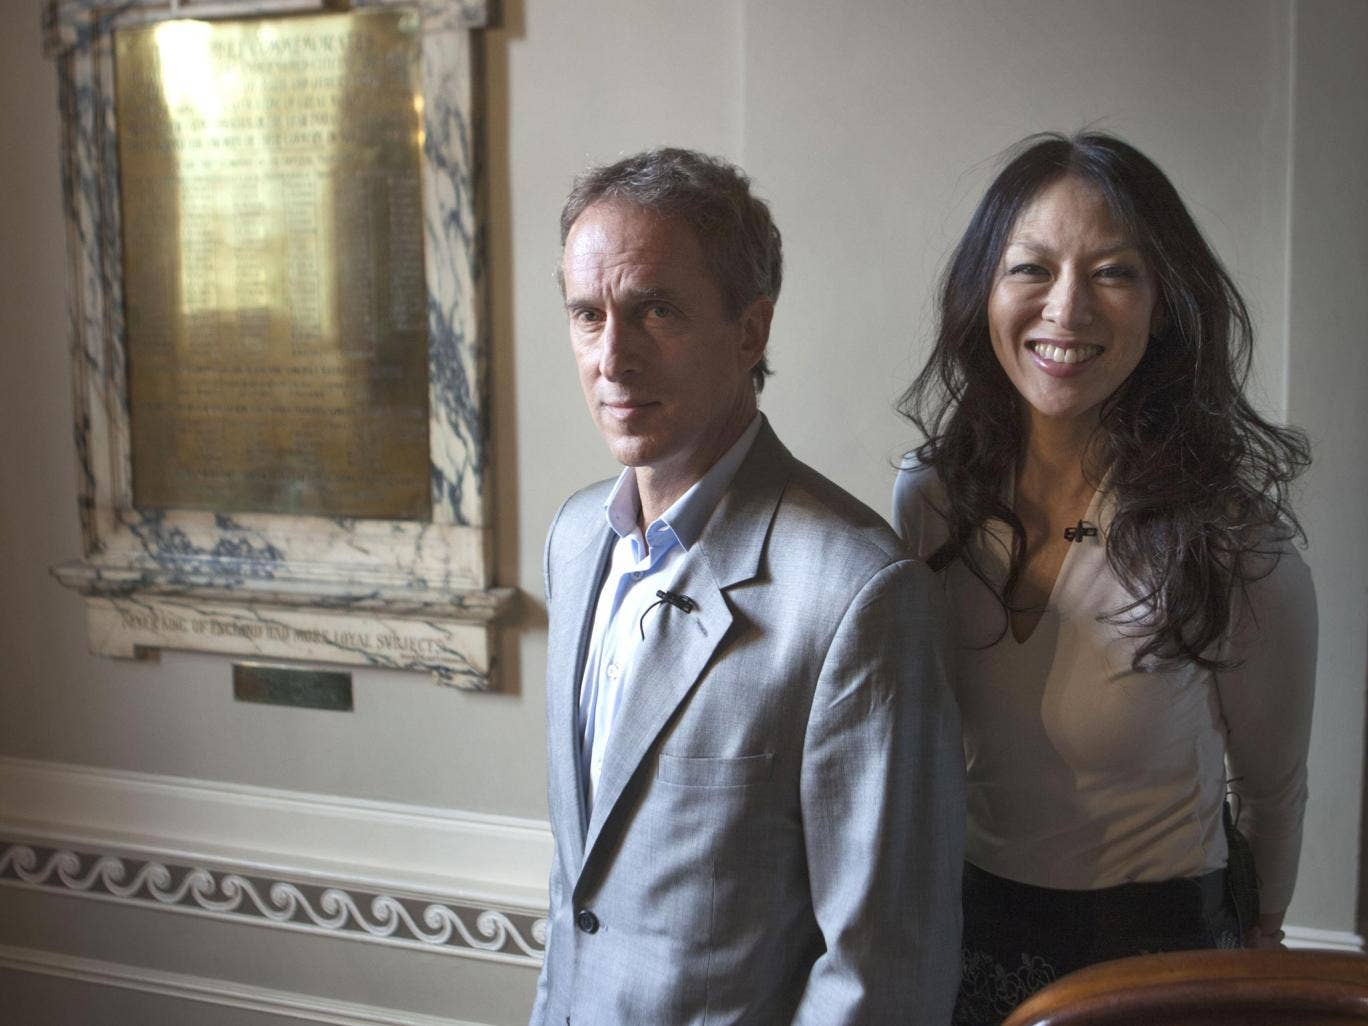 Yale law professors, Amy Chua and Jed Rubenfeld, authors of 'The Triple Package'